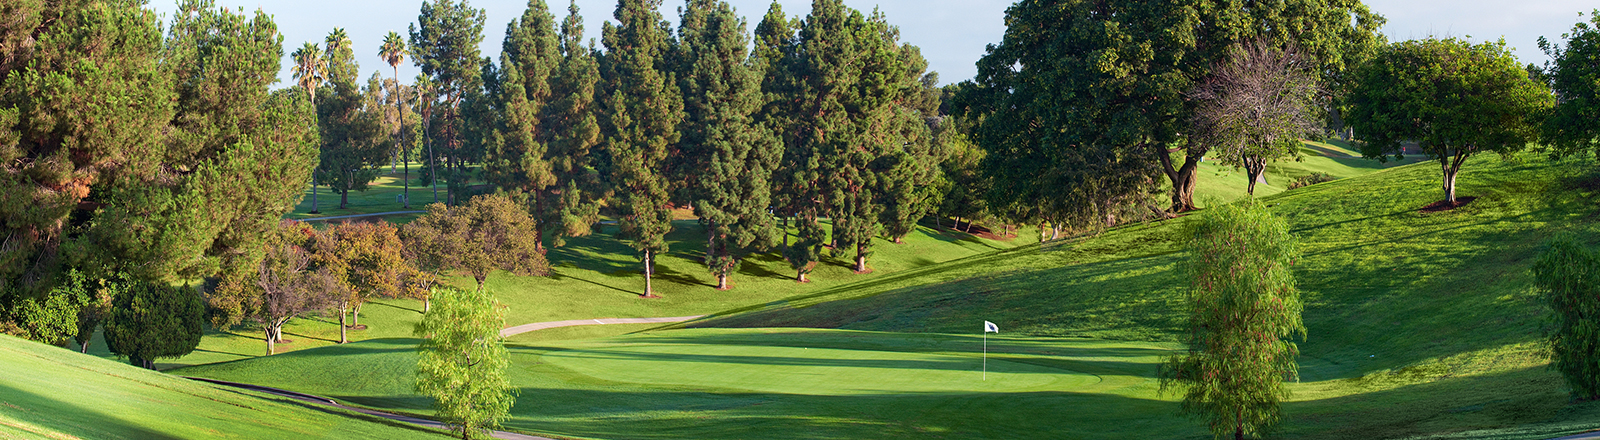 La Mirada Golf Course Header